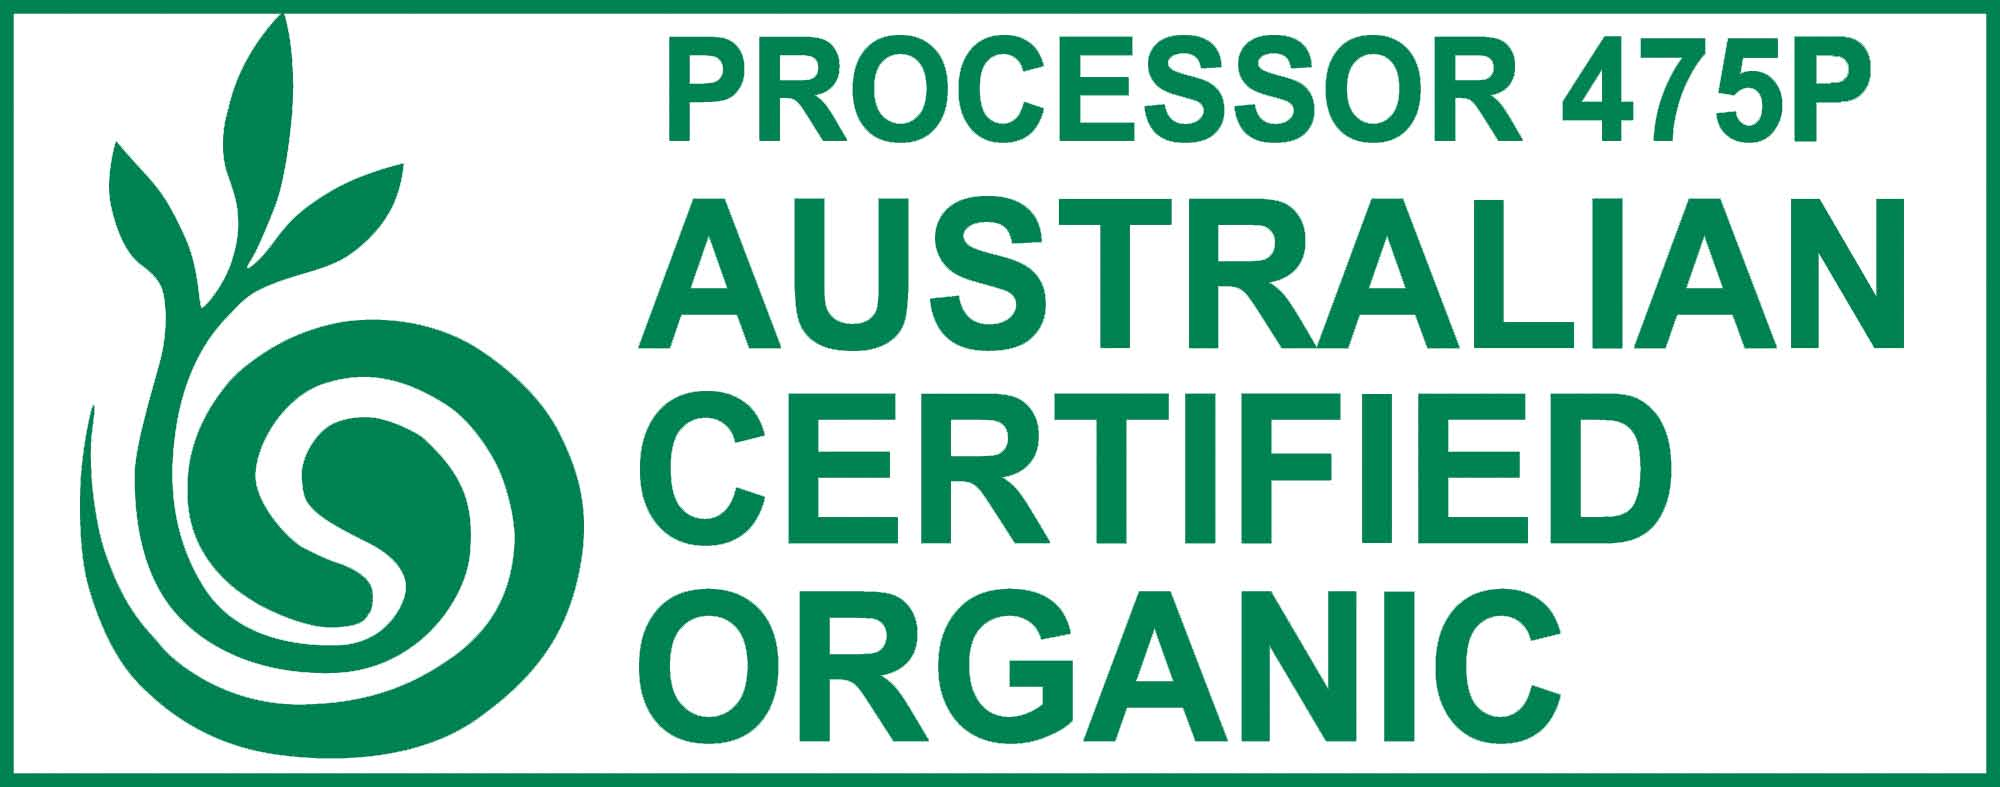 What do 'Australian Certified Organic' mean?